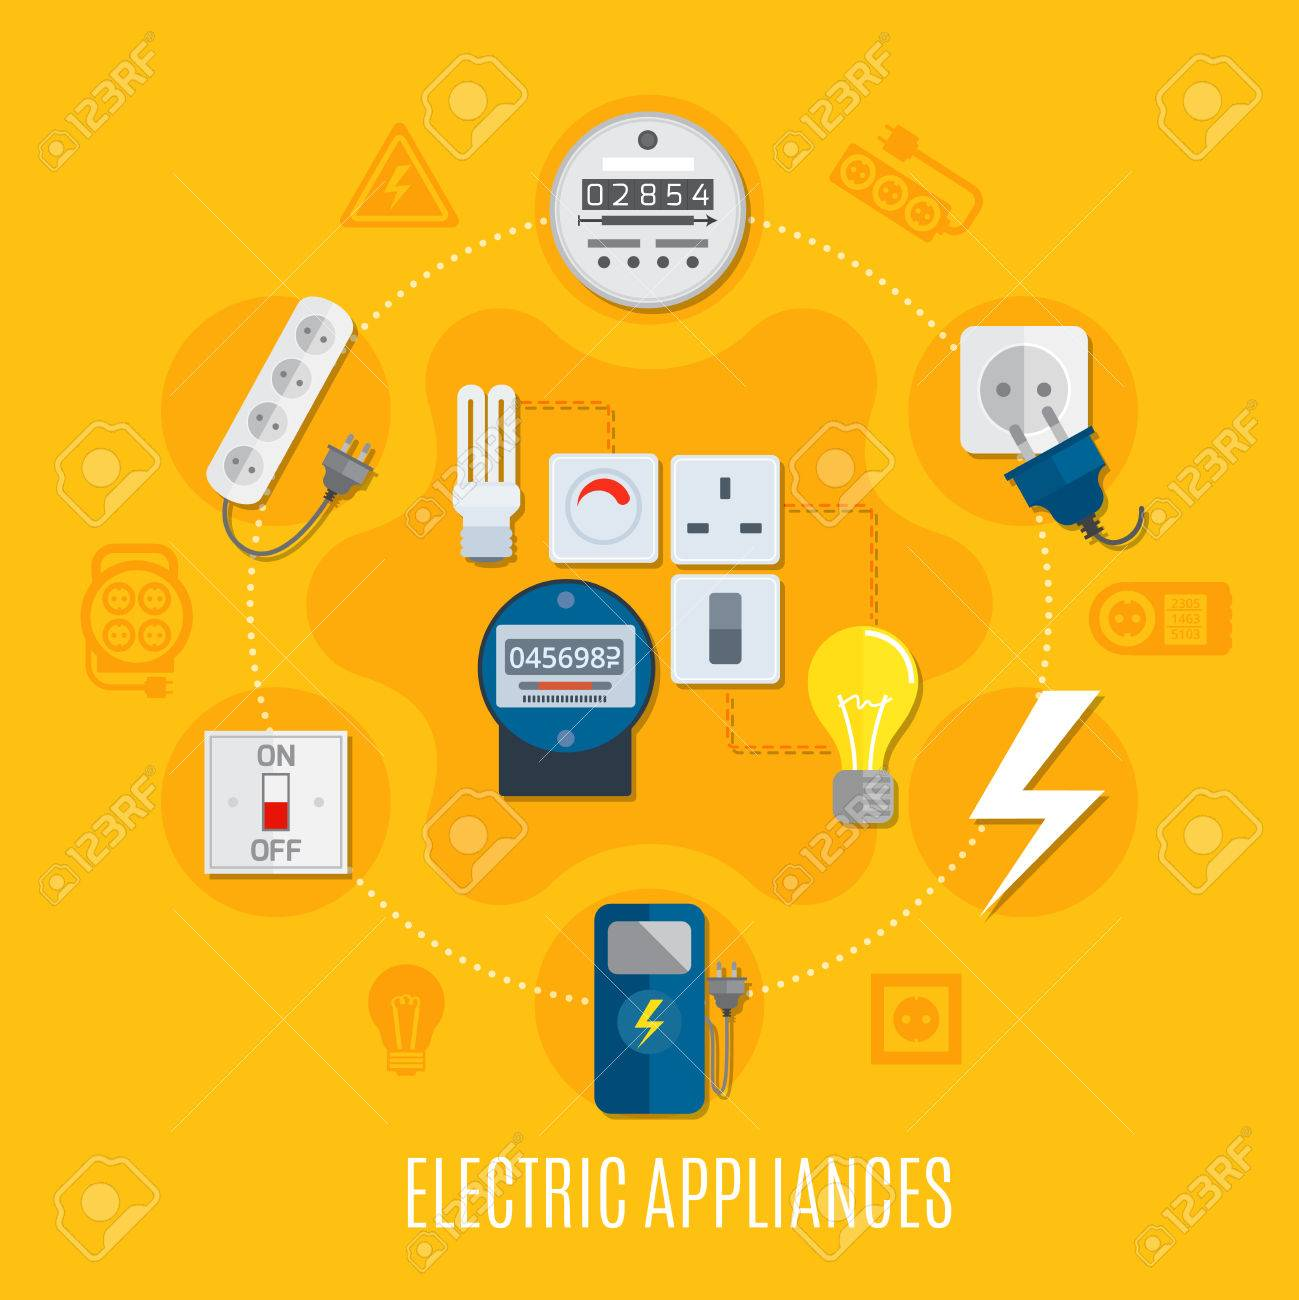 Electric Appliances Round Design With Gauges, Bulbs, Switch ...